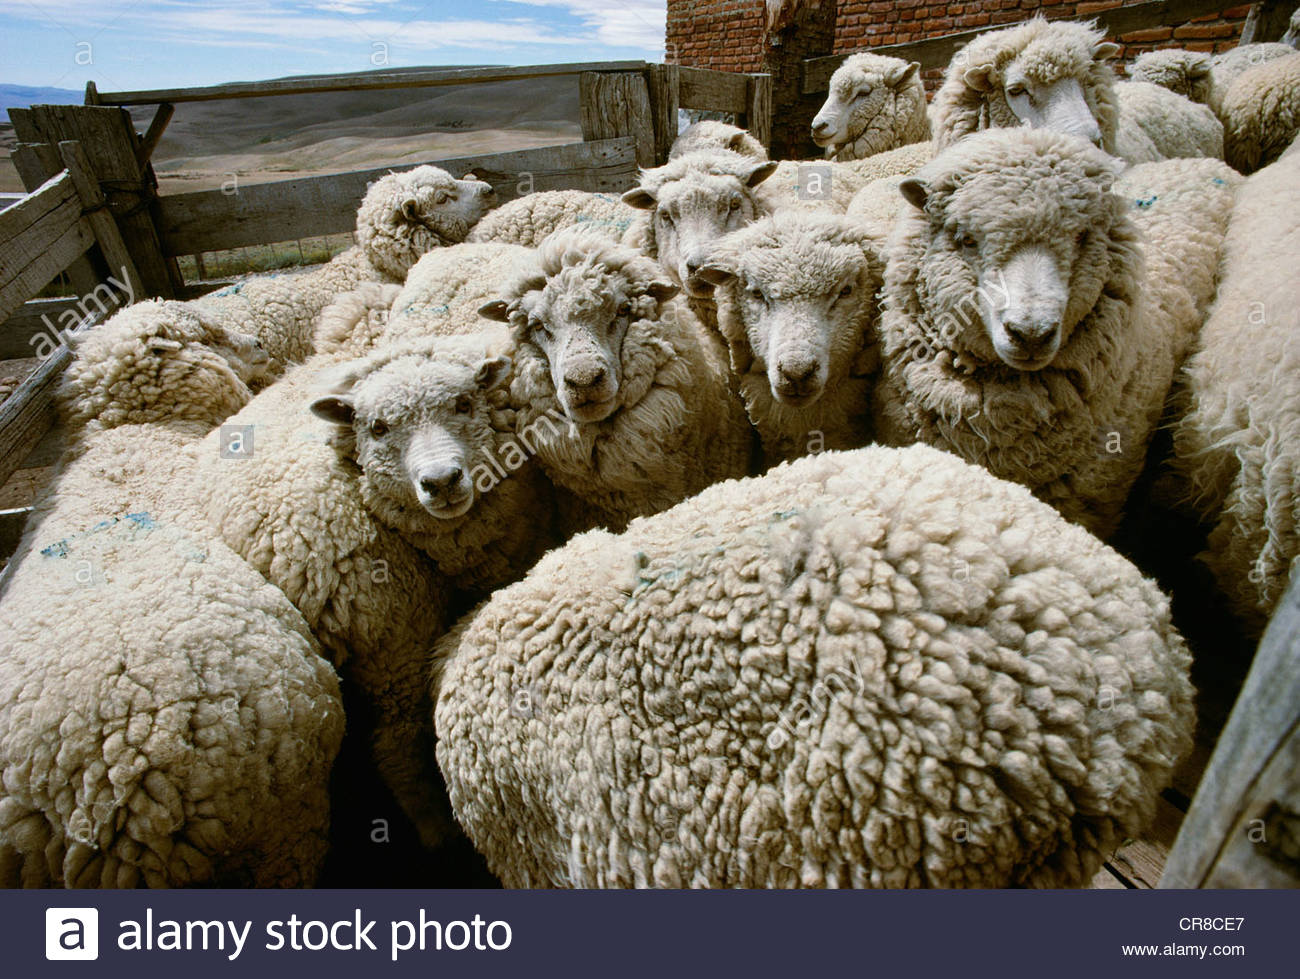 Sheep in holding pens for shearing, Patagonia, Argentina Stock Photo